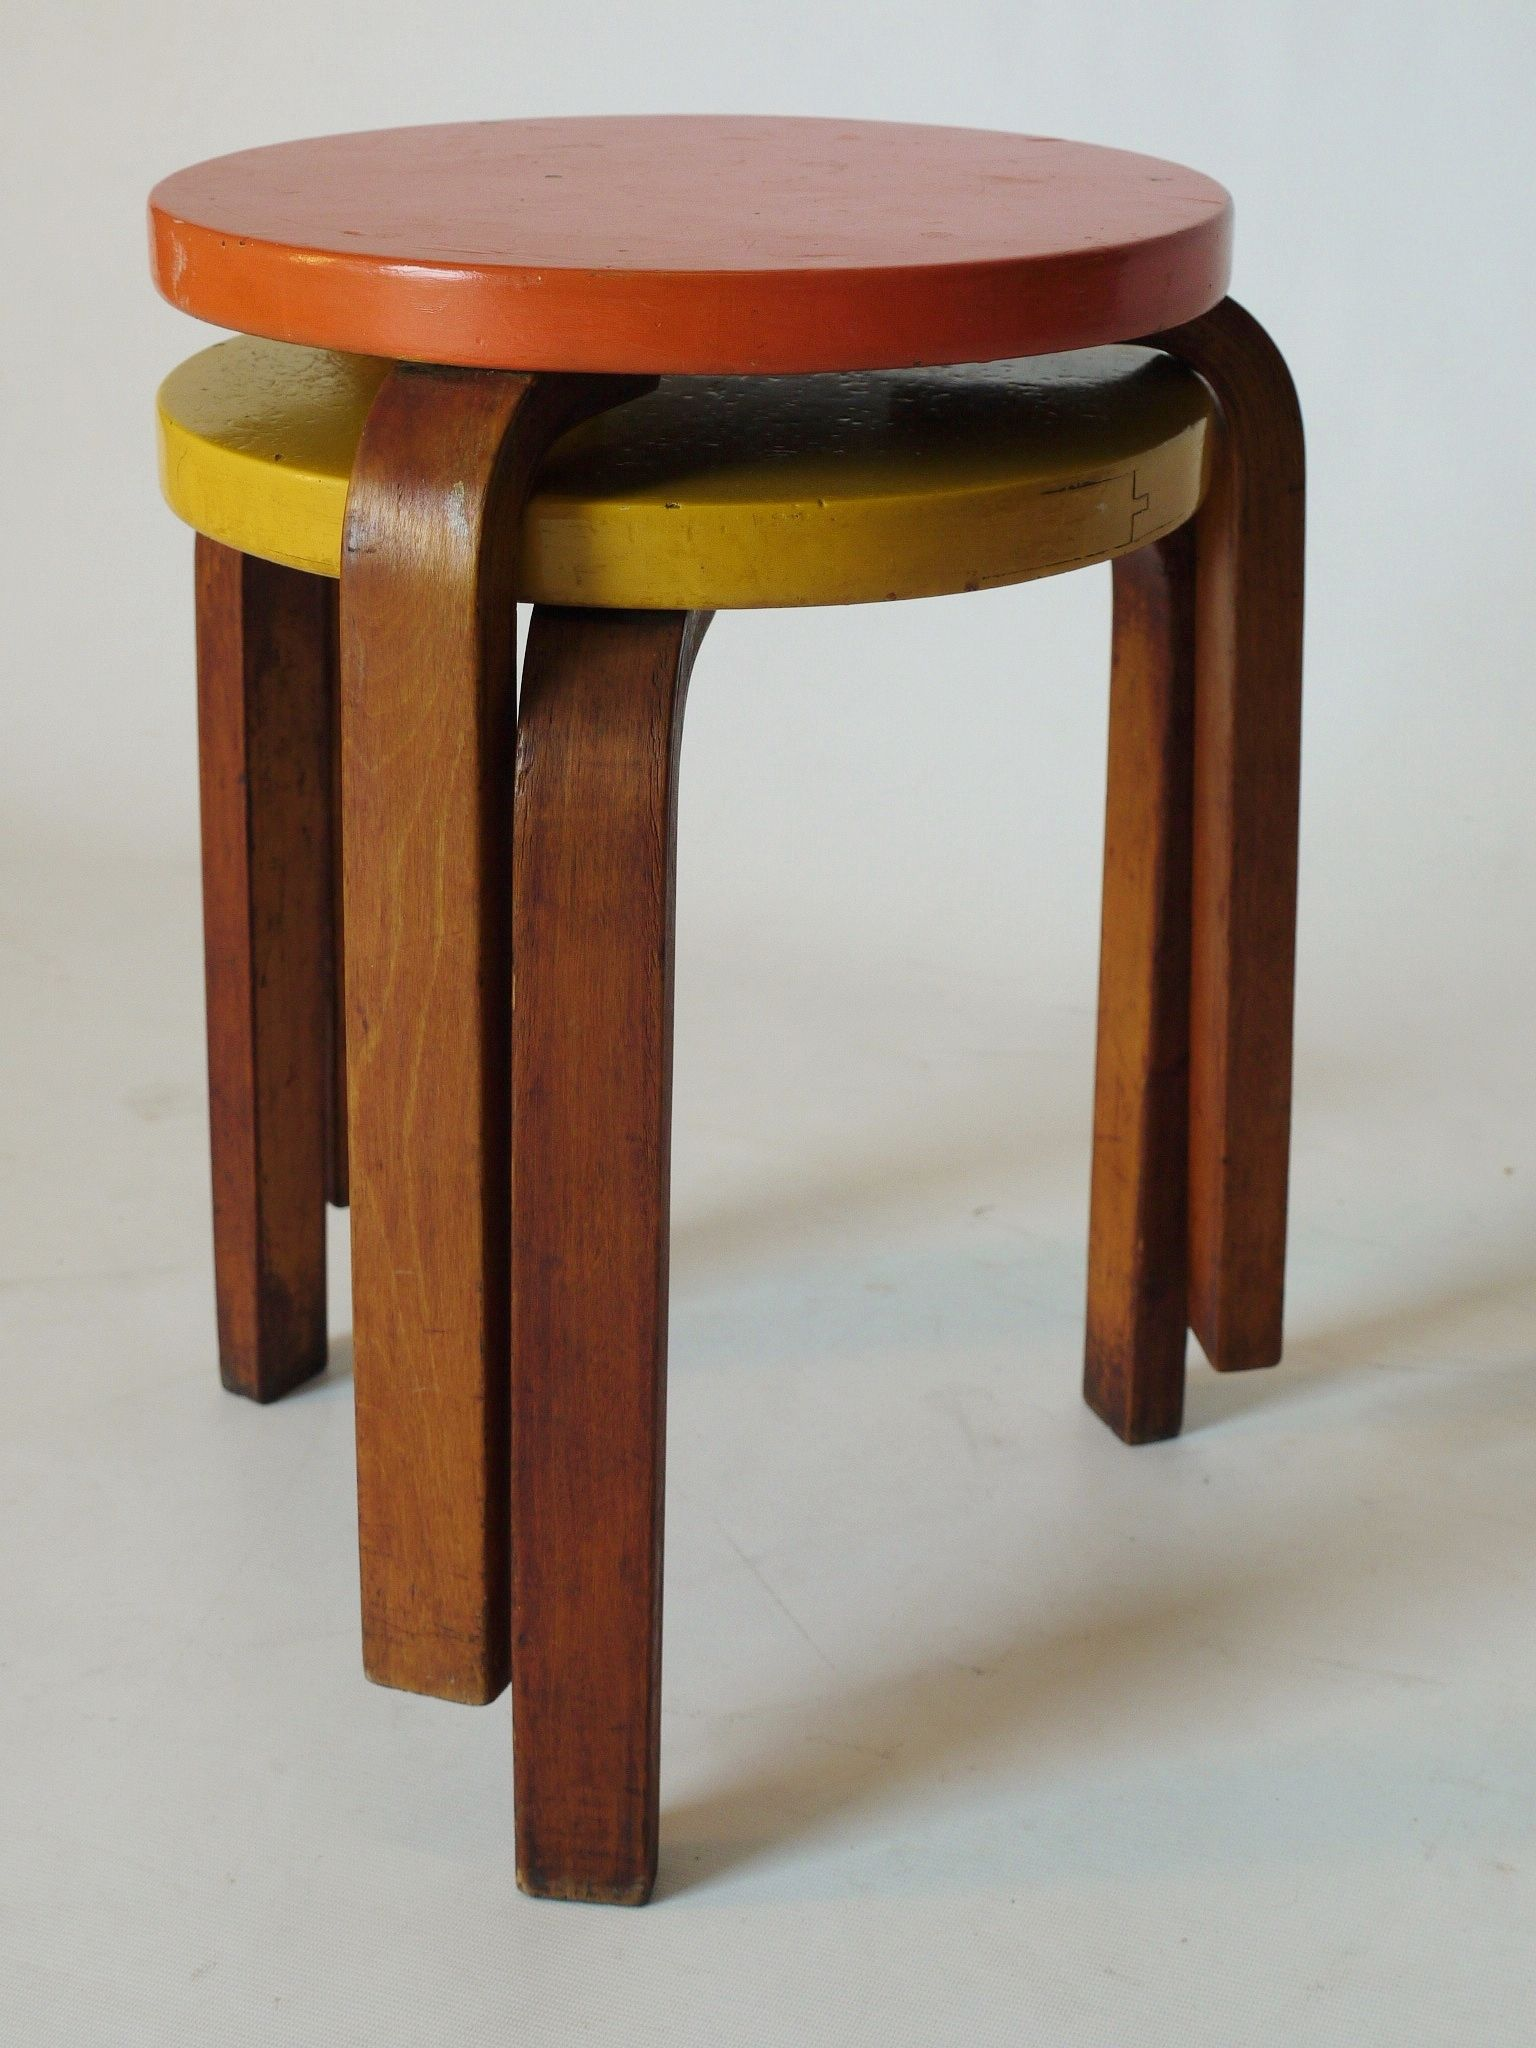 Salle De Bain Alvar Aalto ~ pair of alvar aalto model 60 stools made in finland and retailed by